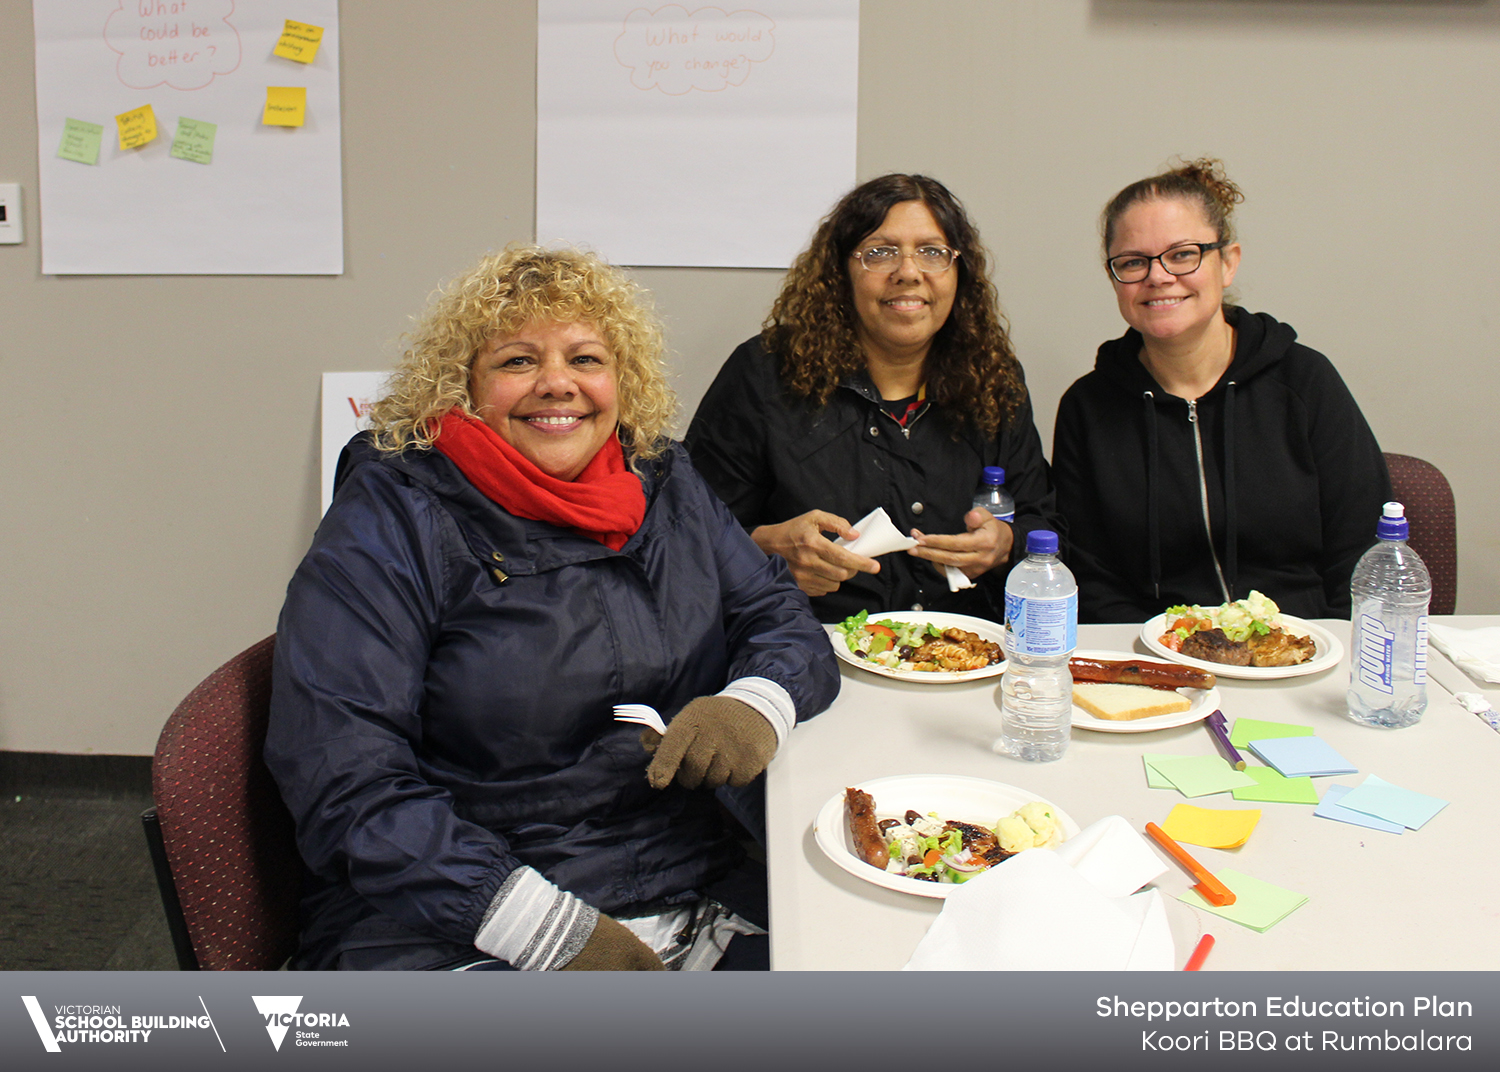 3 women smiling at table for Koori BBQ at Rumbalara